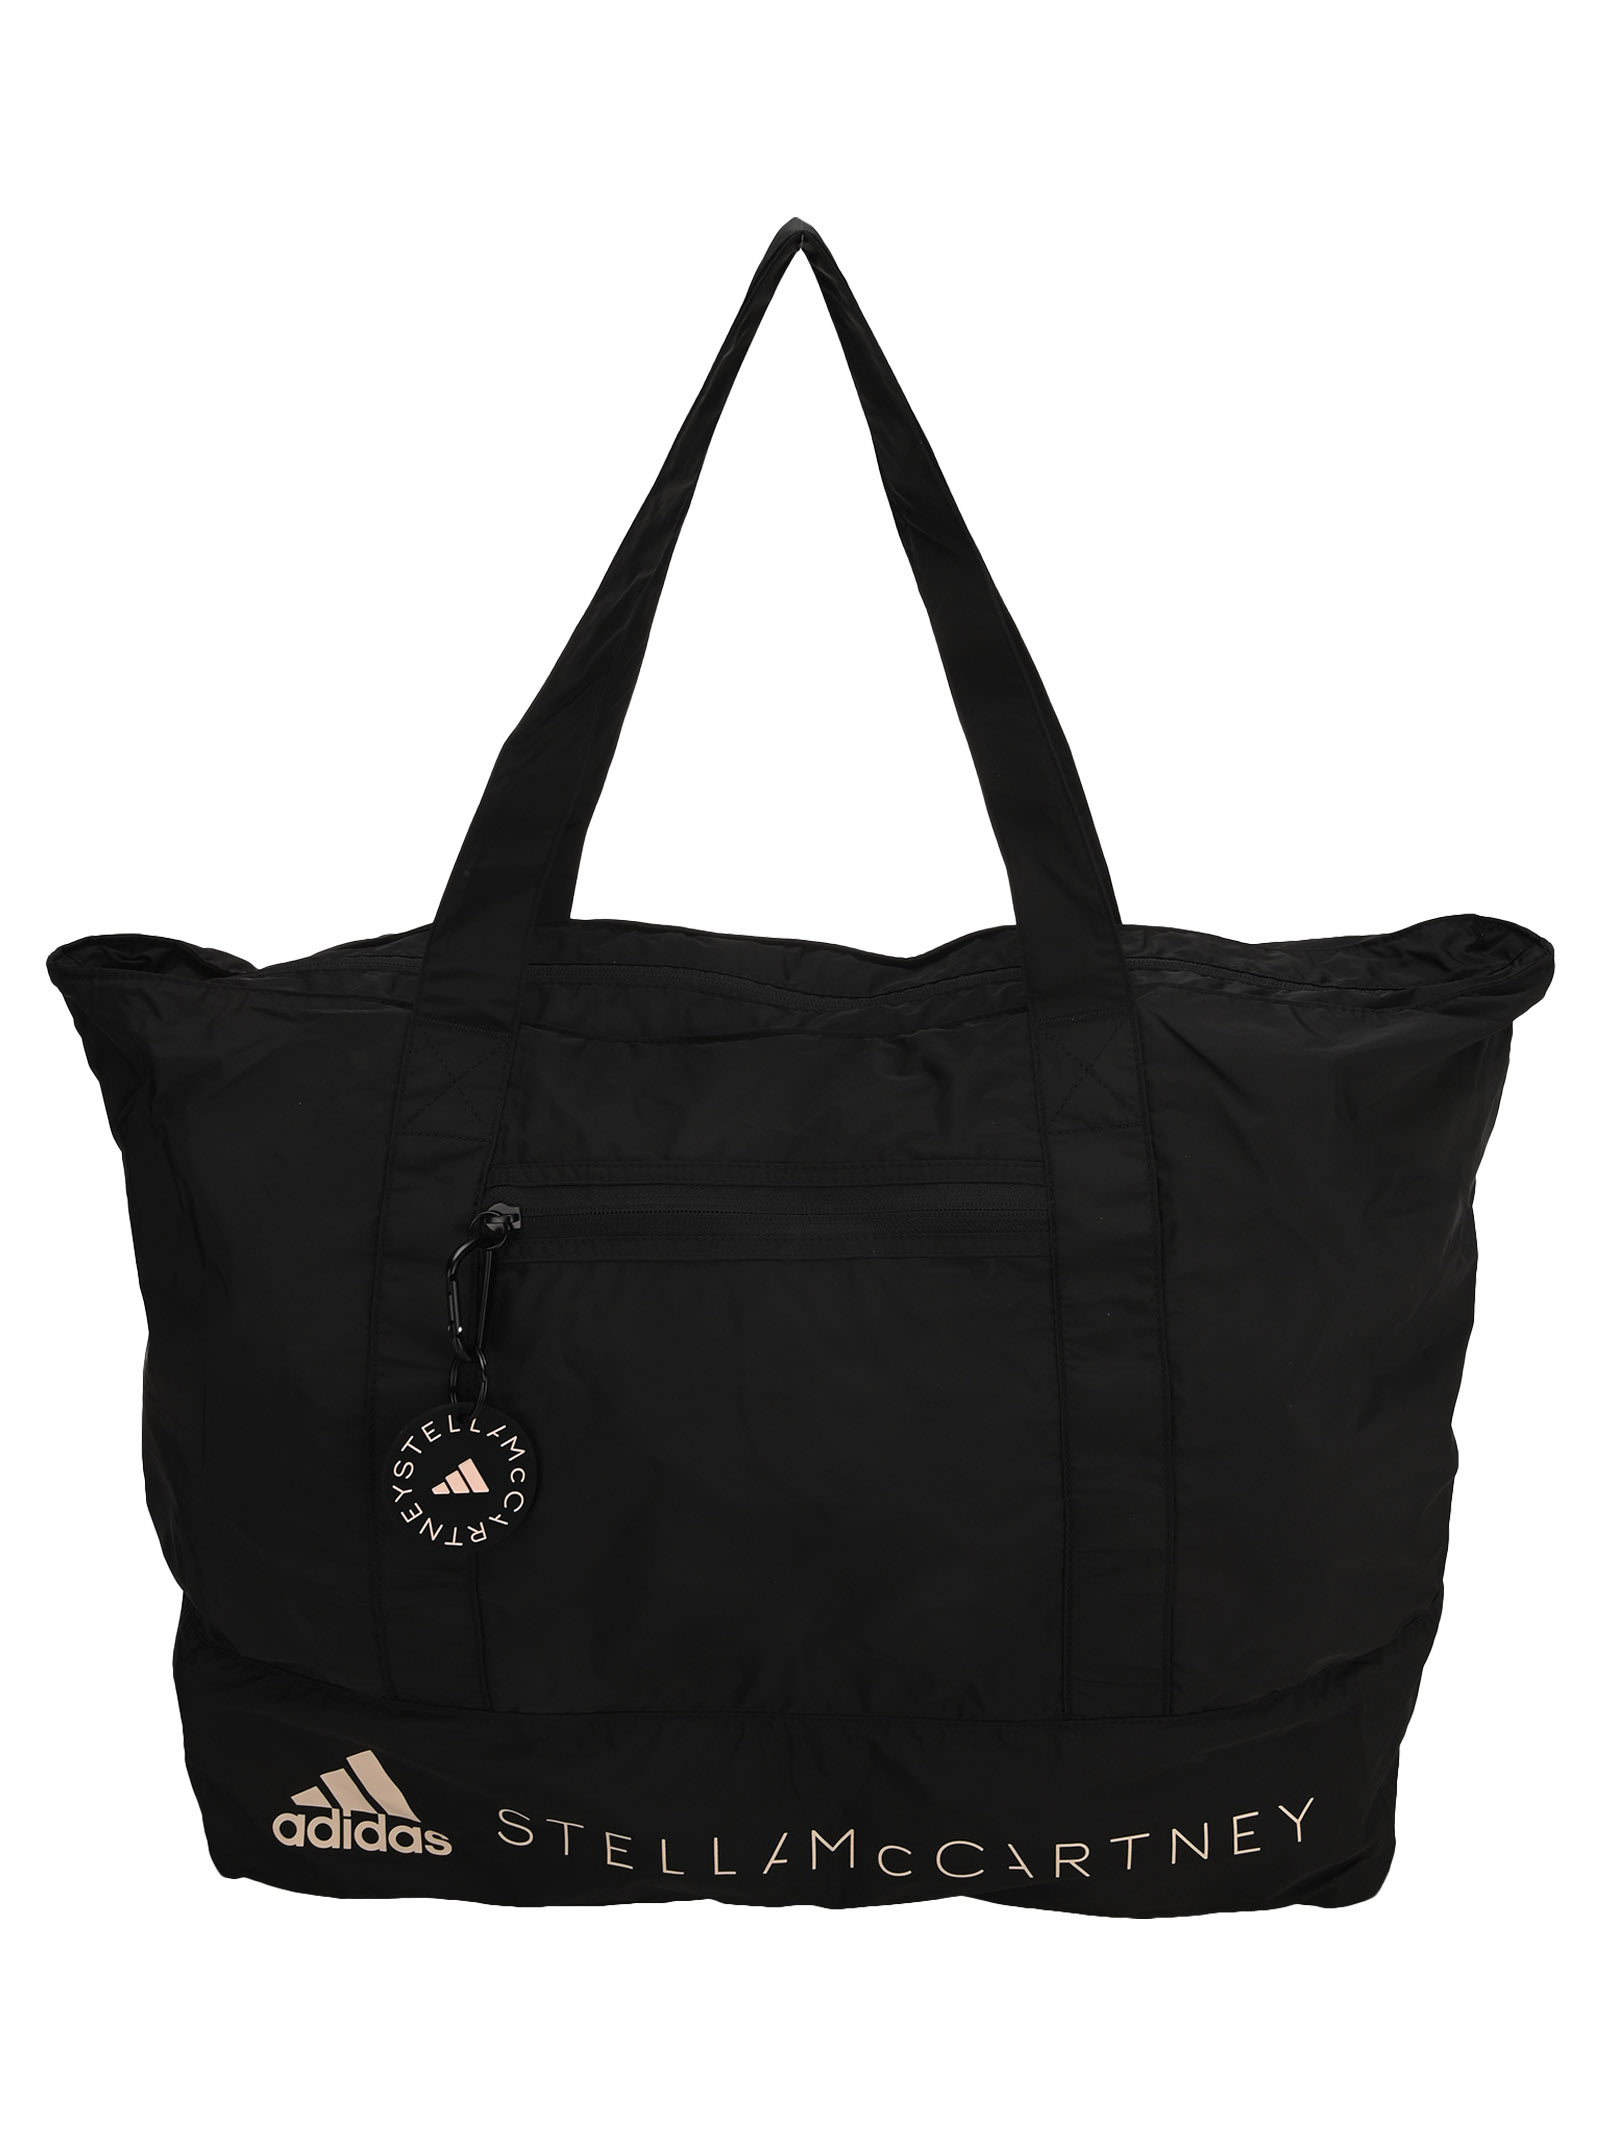 Adidas By Stella Mccartney ADIDAS BY STELLA MCCARTNEY ADIDAS BY STELLA MCCARTNEY TOTE BAG